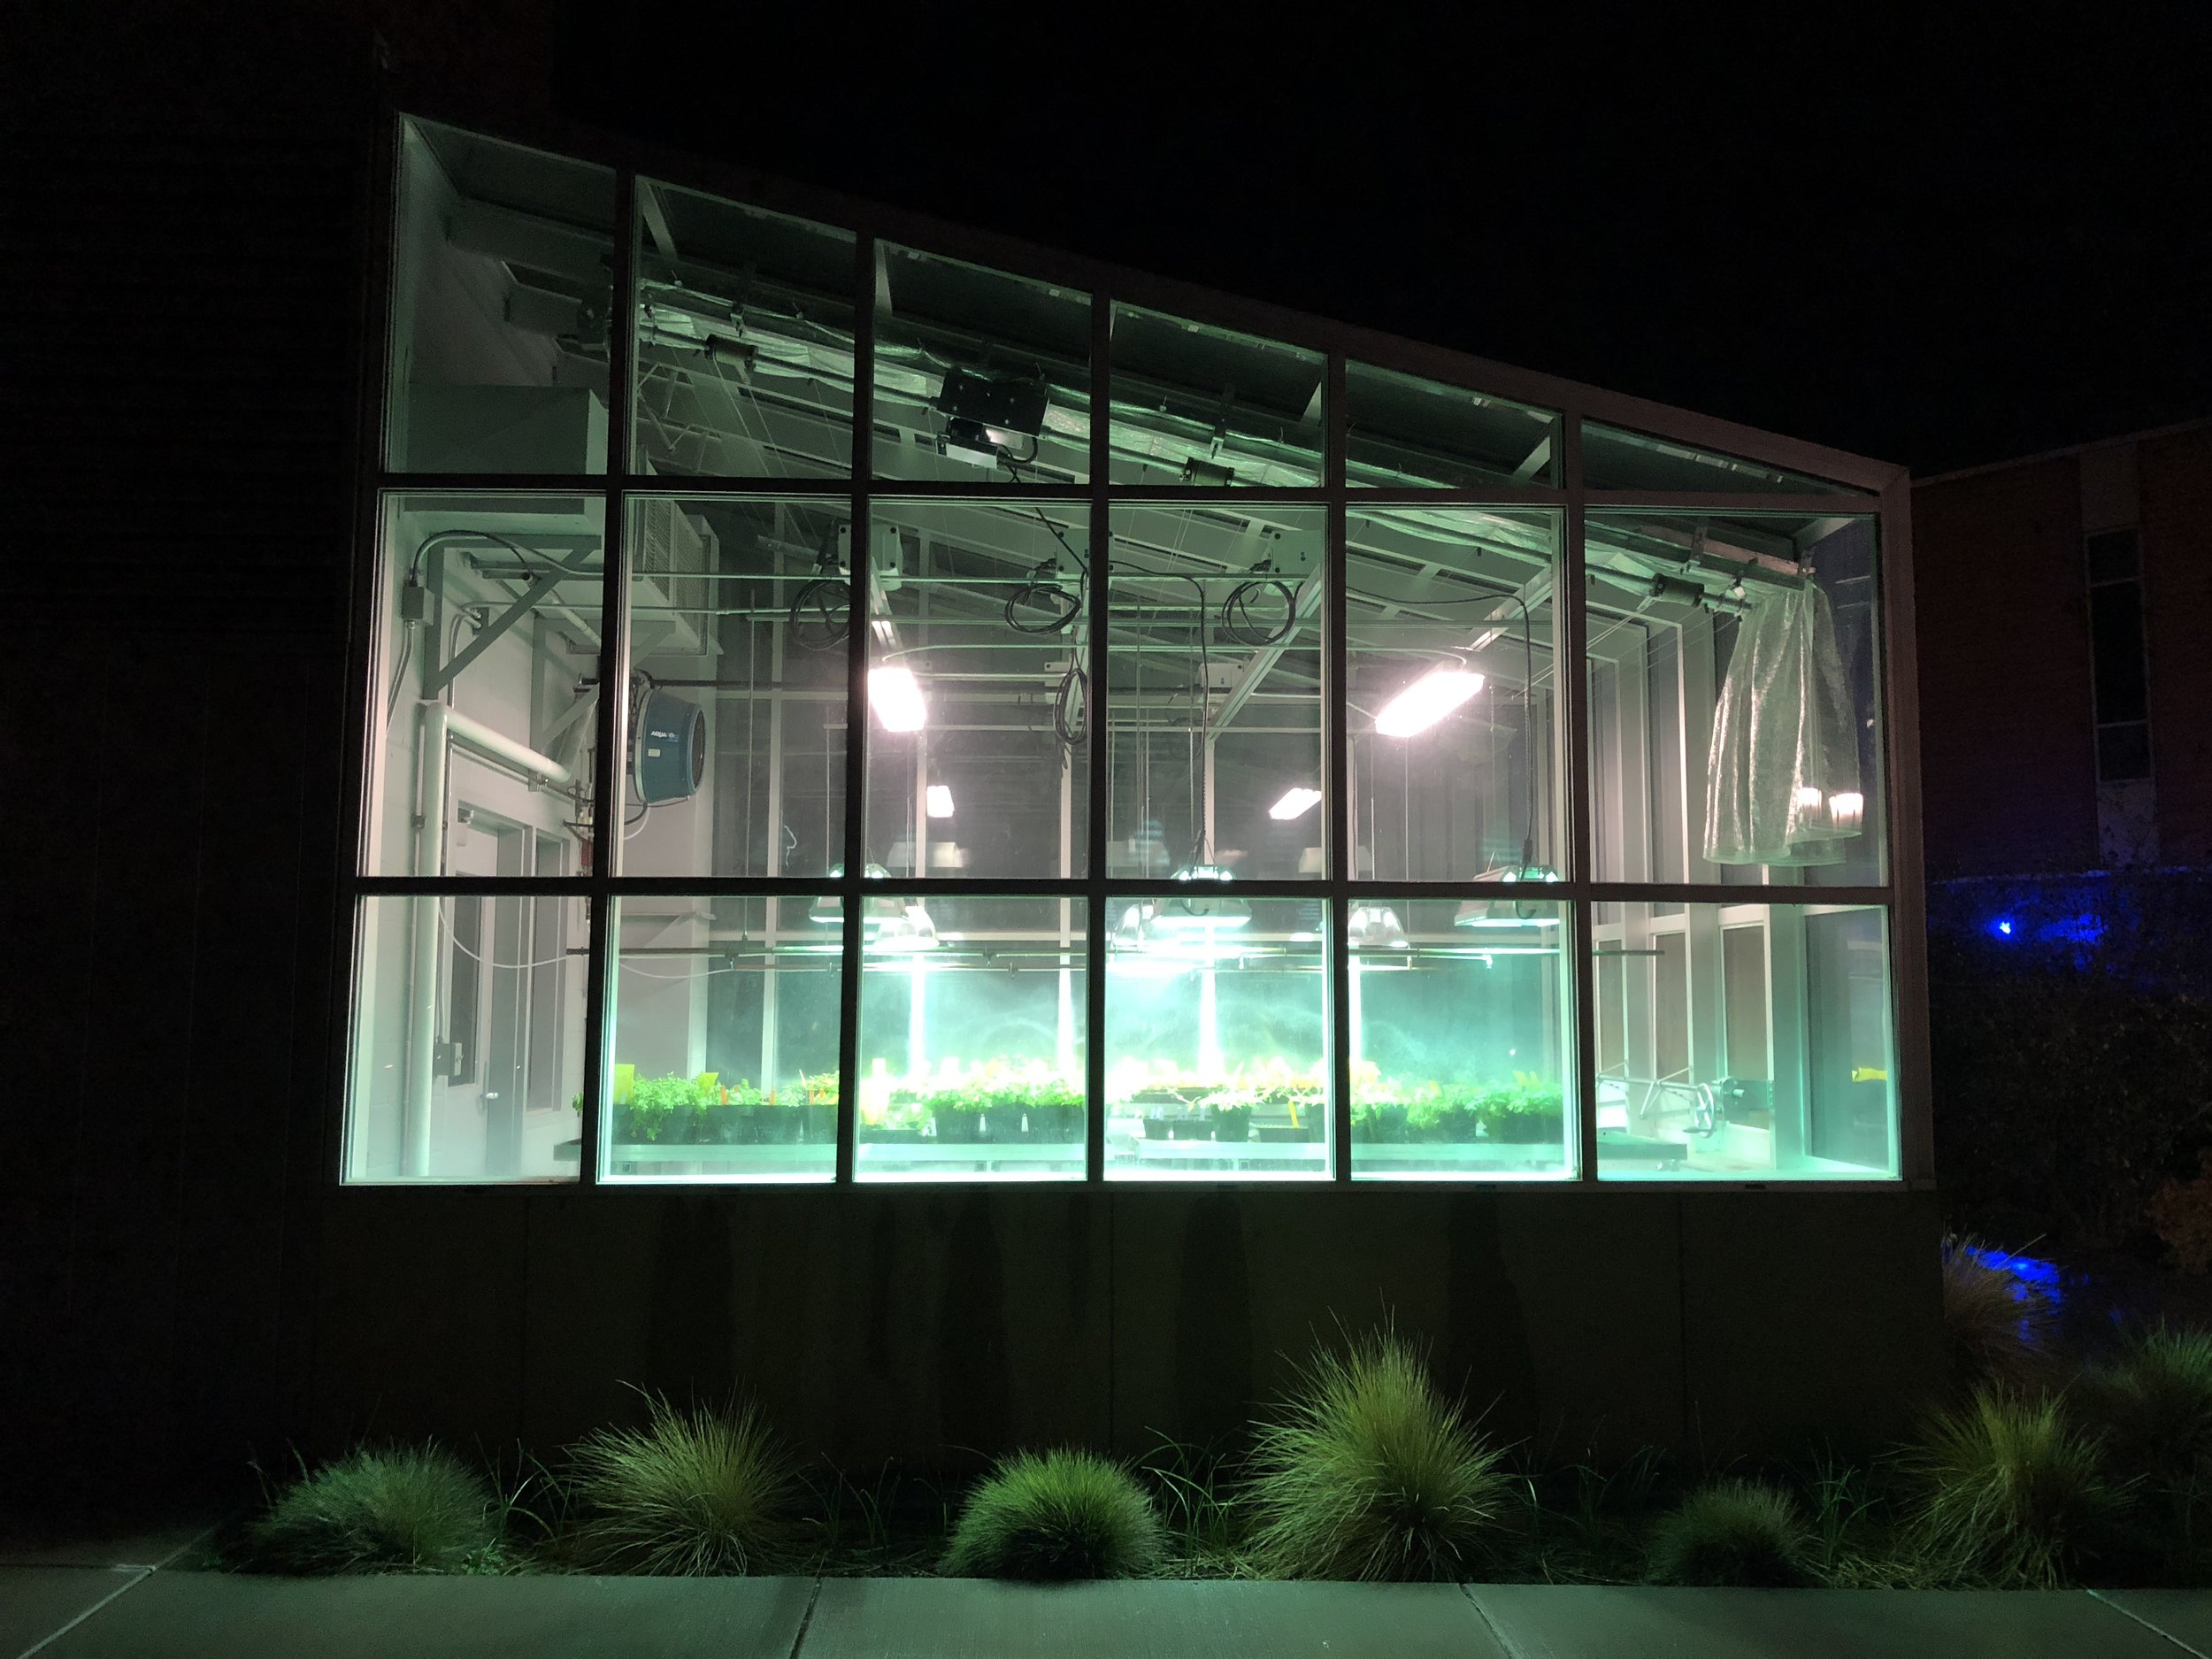 the greenhouse next to the science bldg.